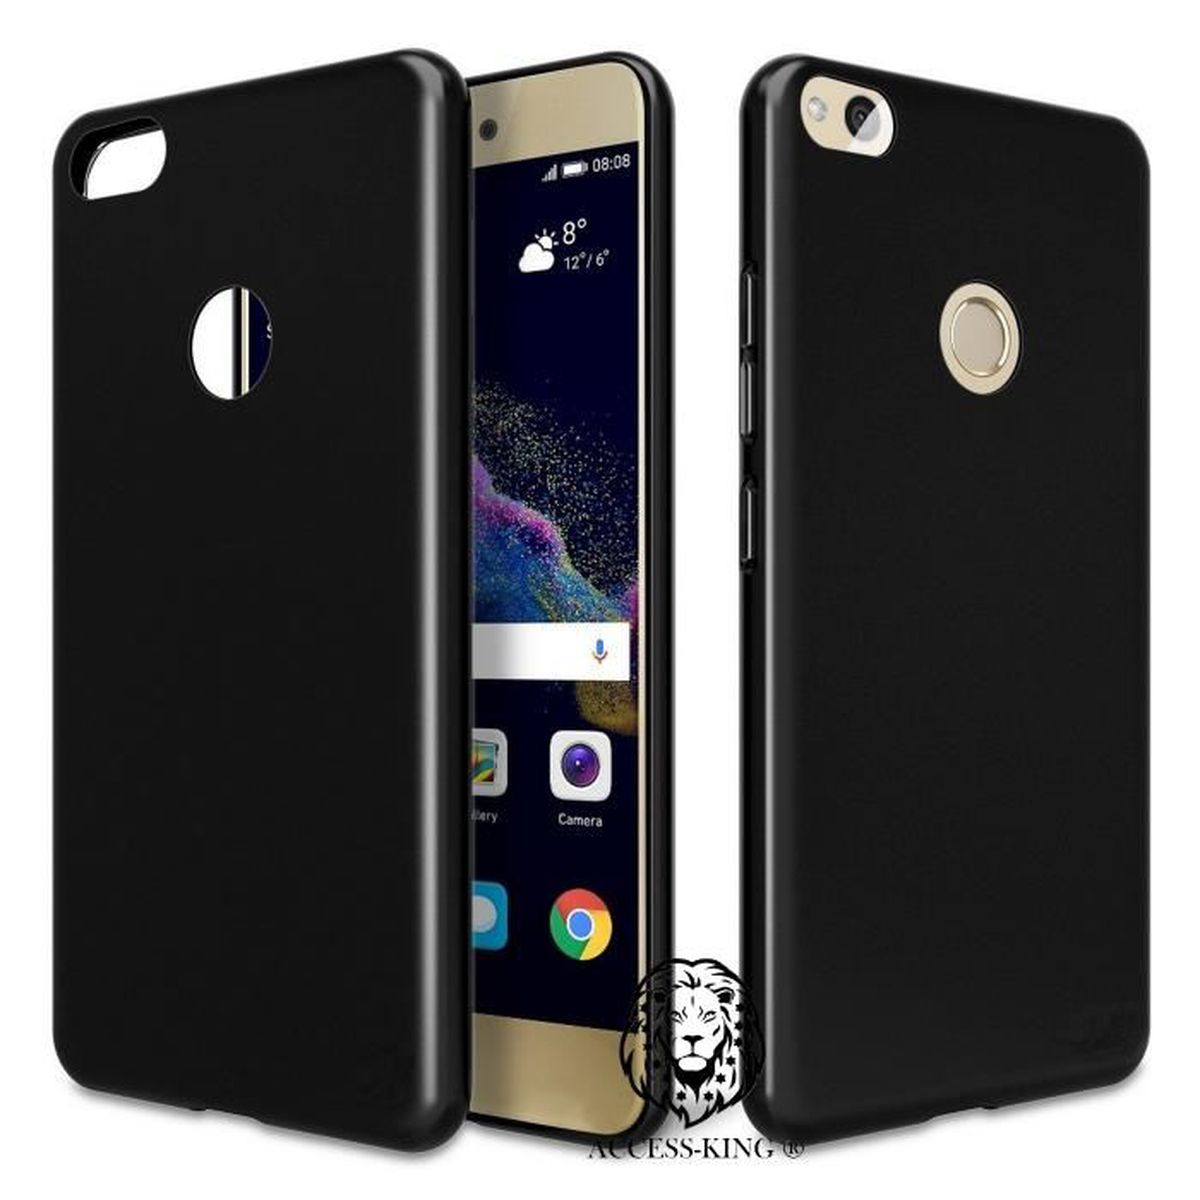 coque huawei p8 lite 2017 ultra thin tpu silicone mat noir. Black Bedroom Furniture Sets. Home Design Ideas